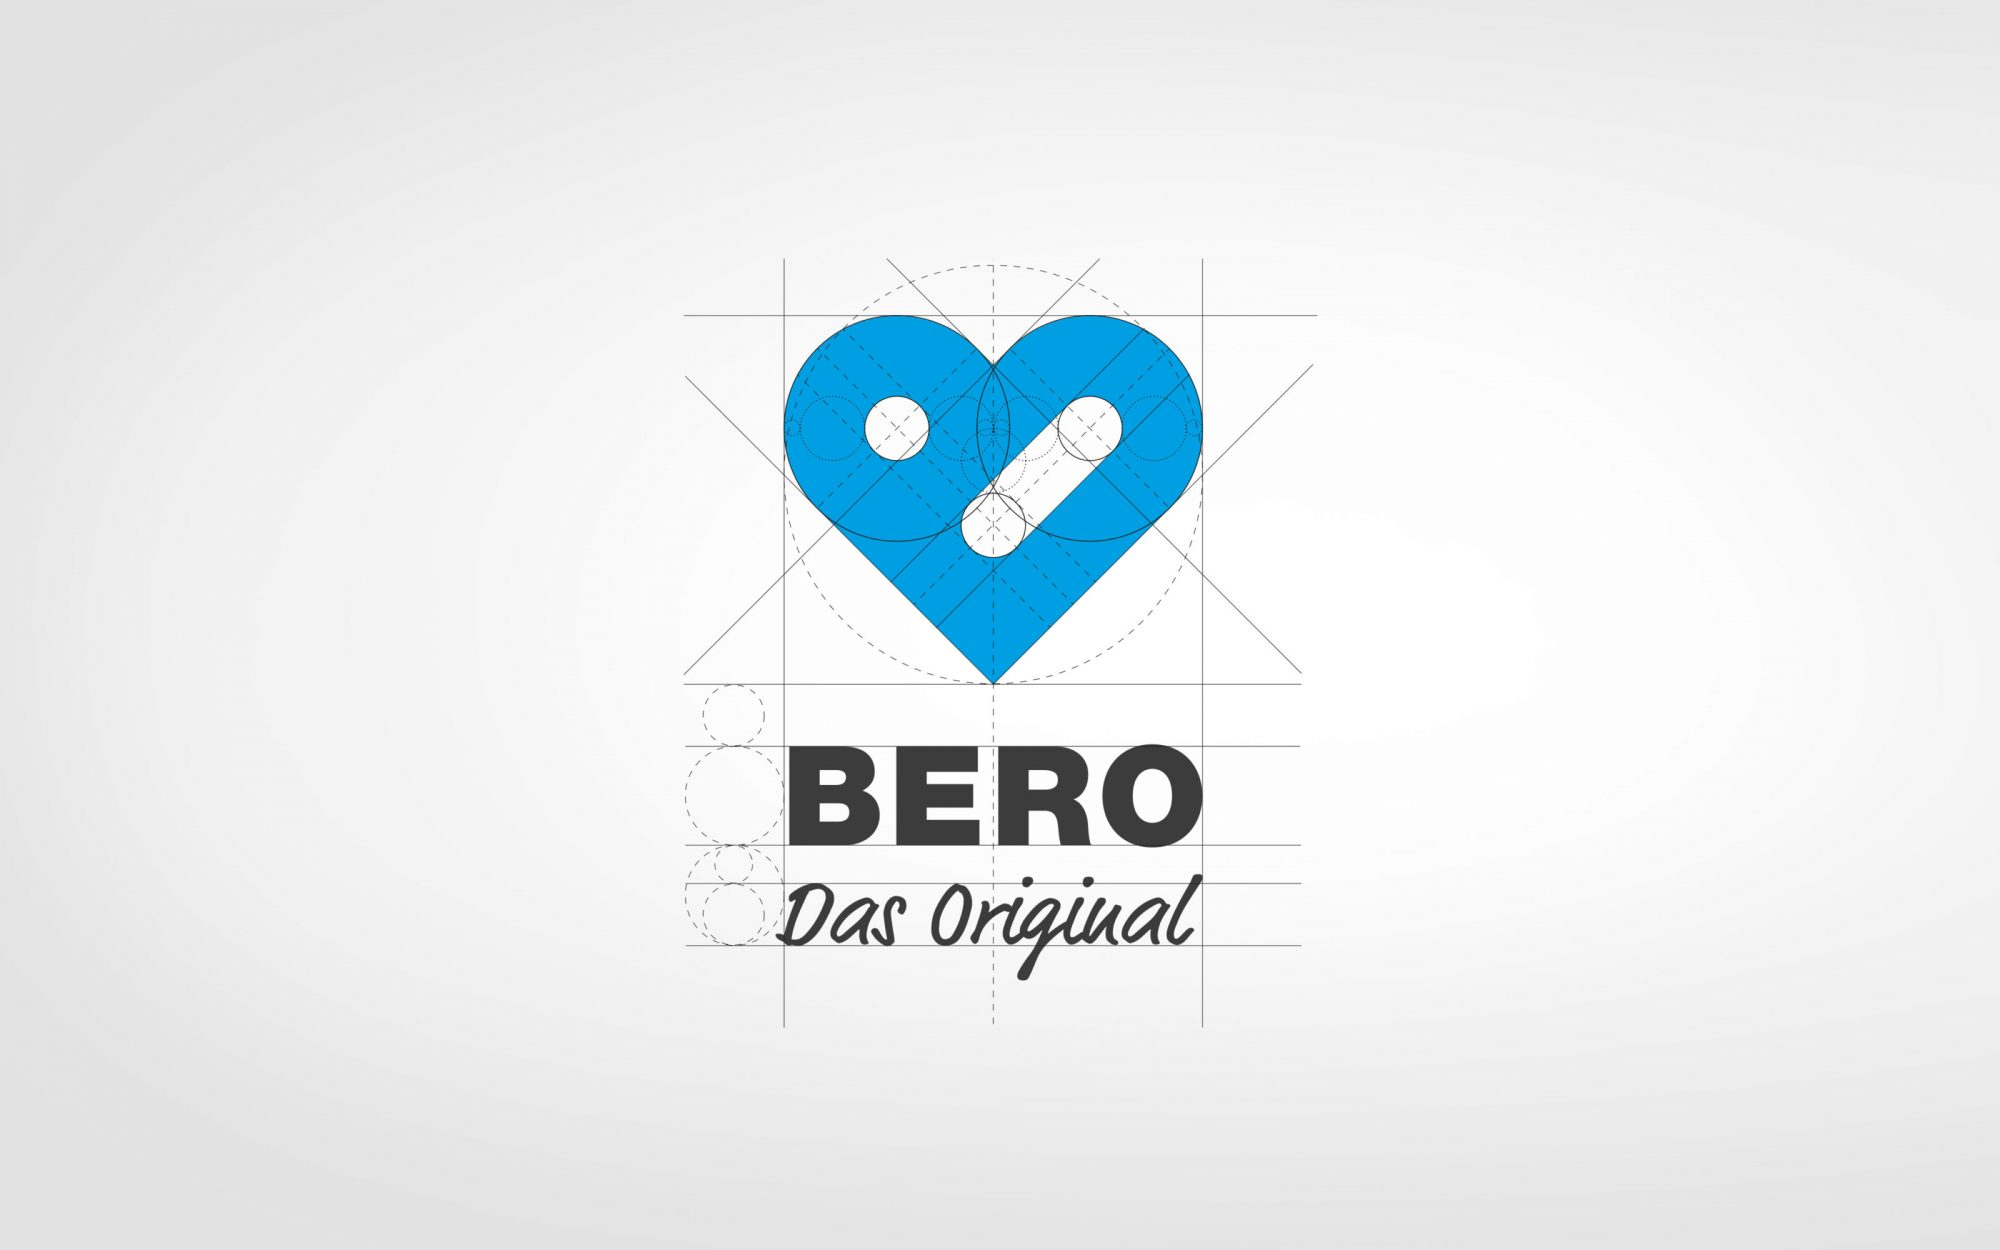 GRACO-Bero-Corporate-Design-Logoentwicklung-2